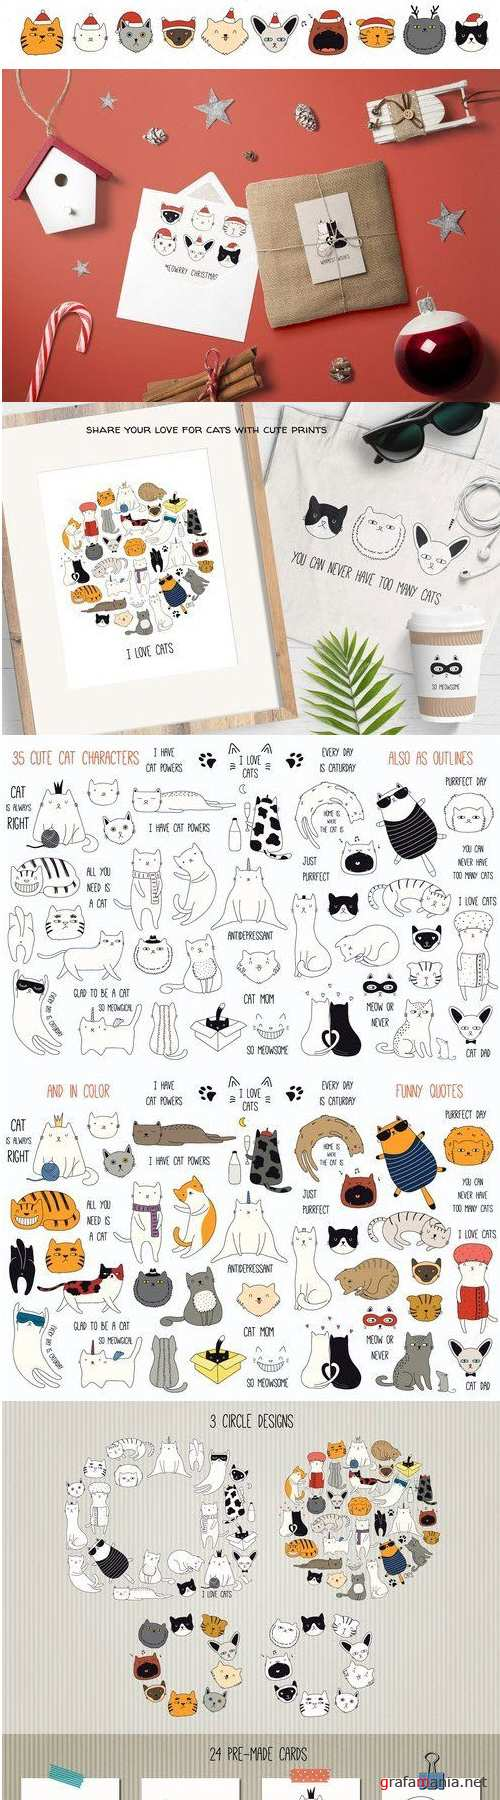 Cute Cat Doodles 3159467